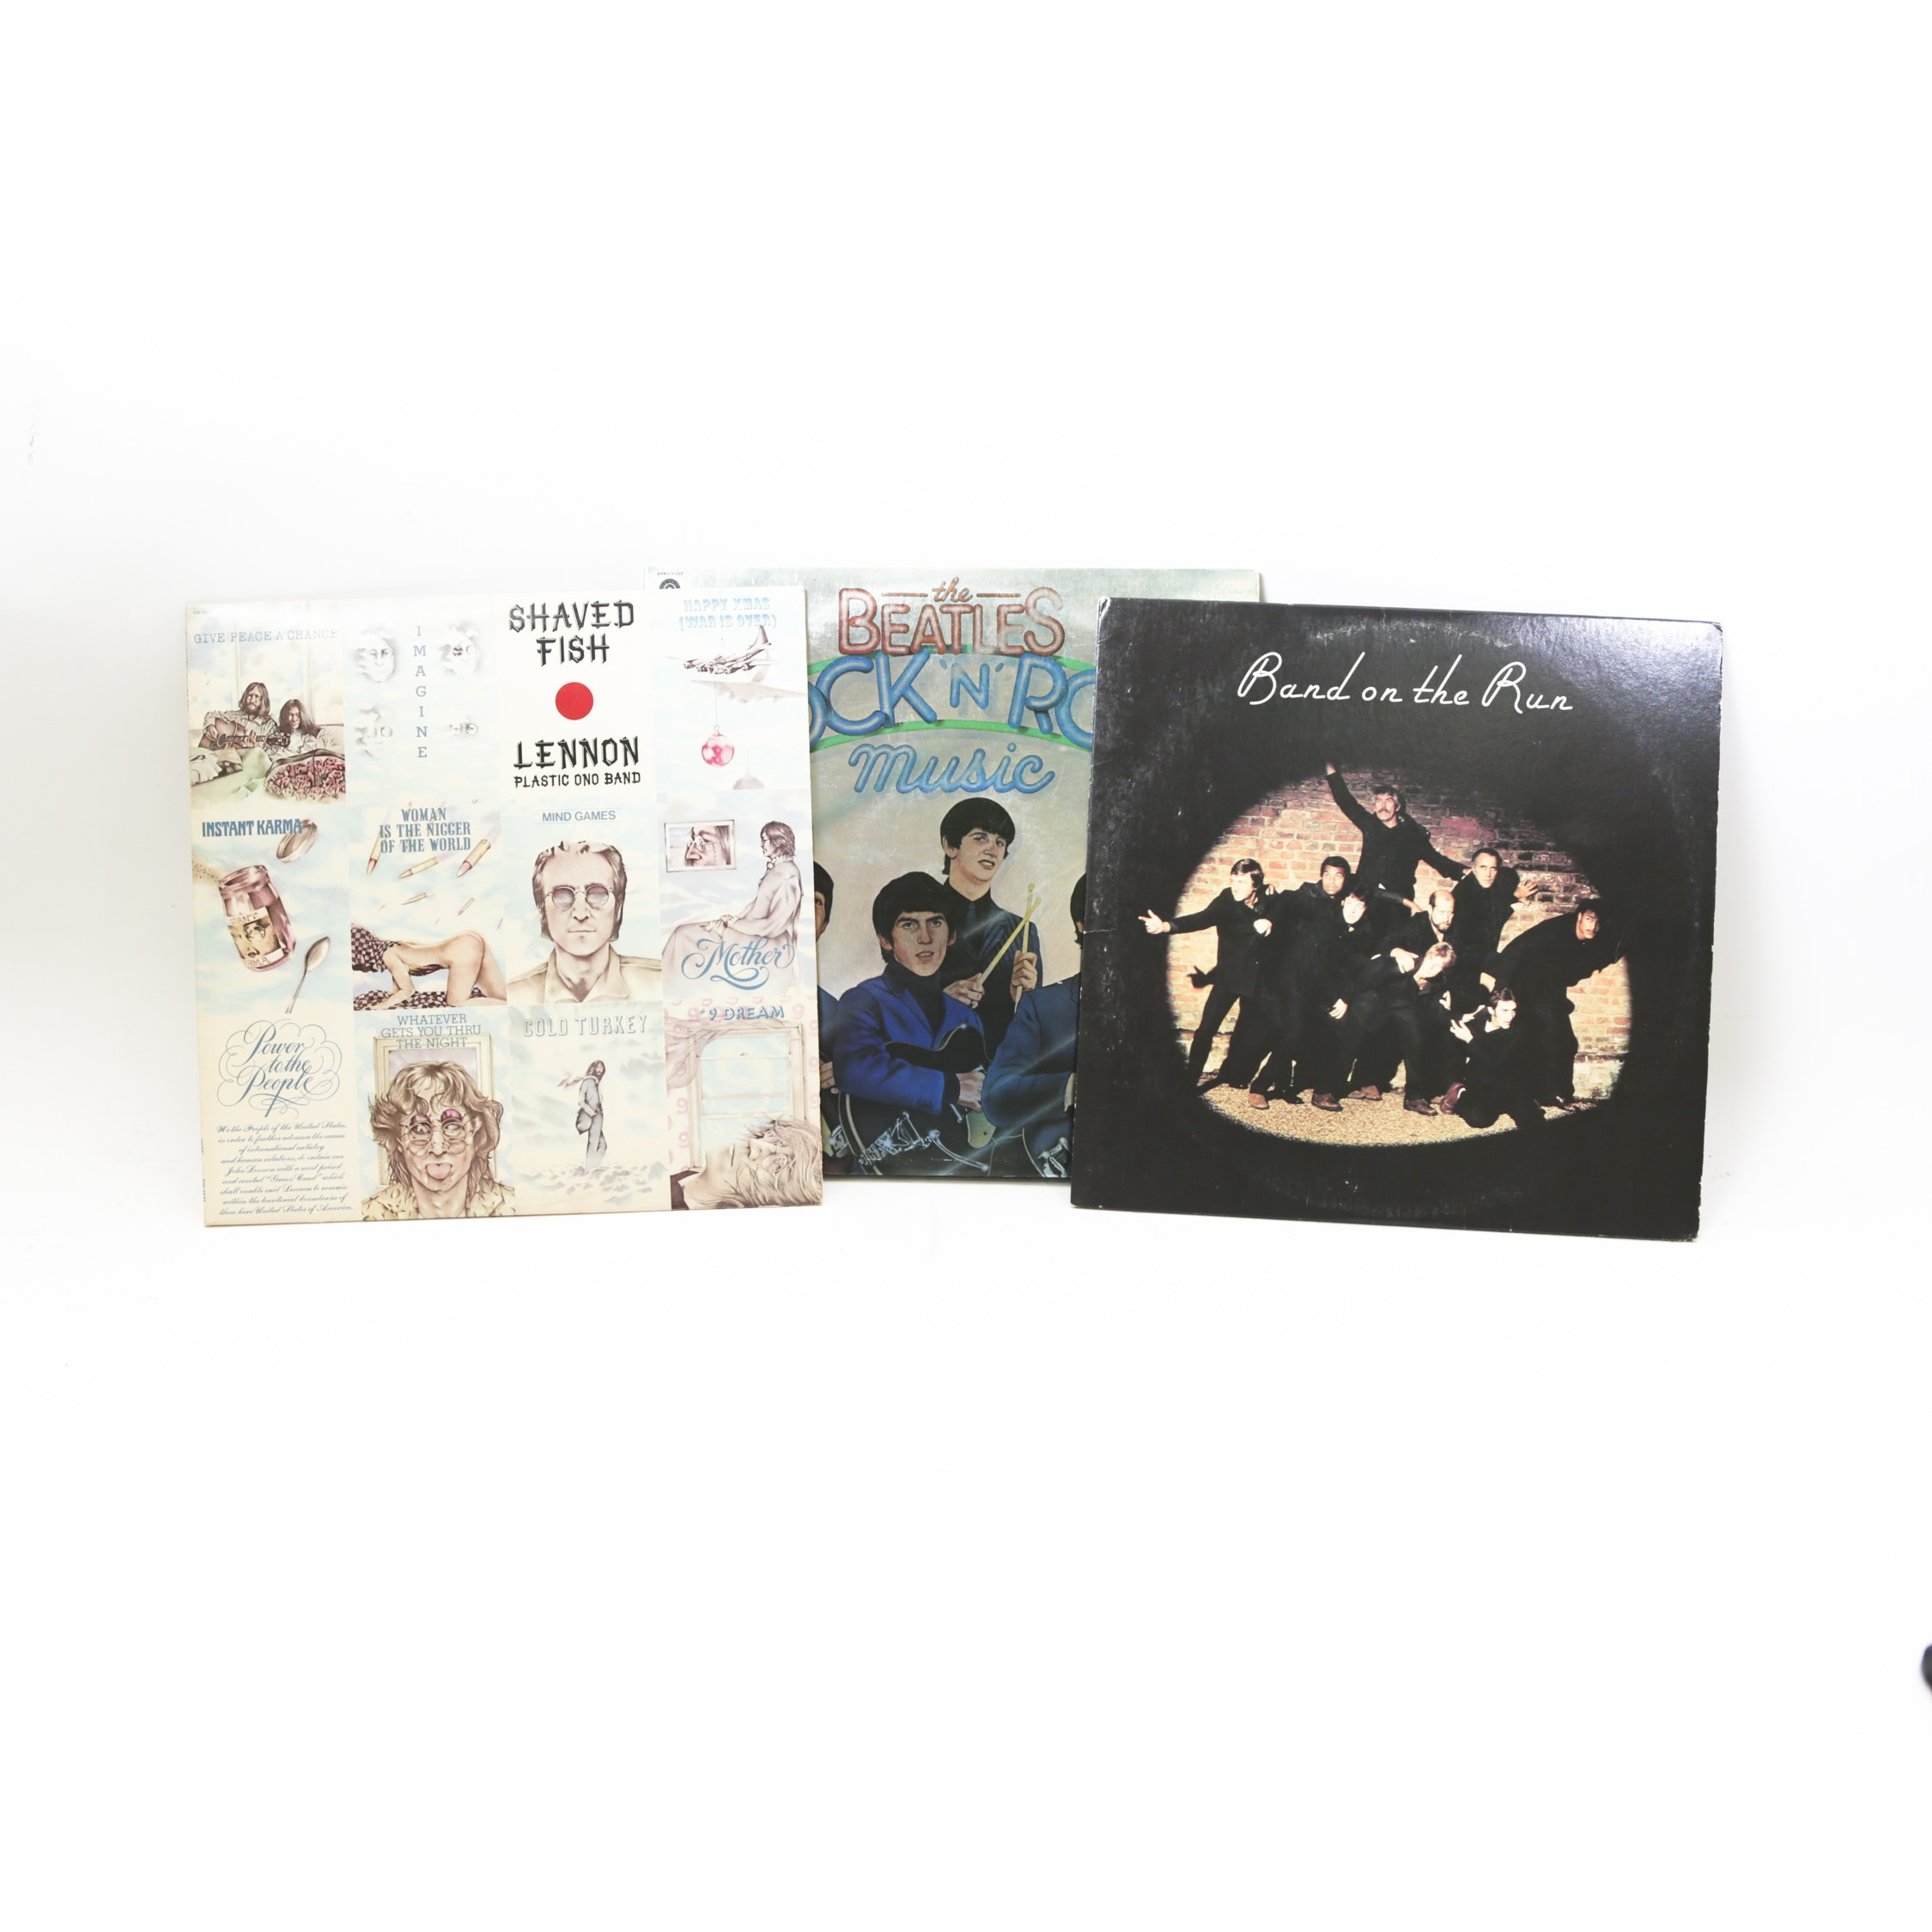 The Beatles and Solo Beatles LP Records